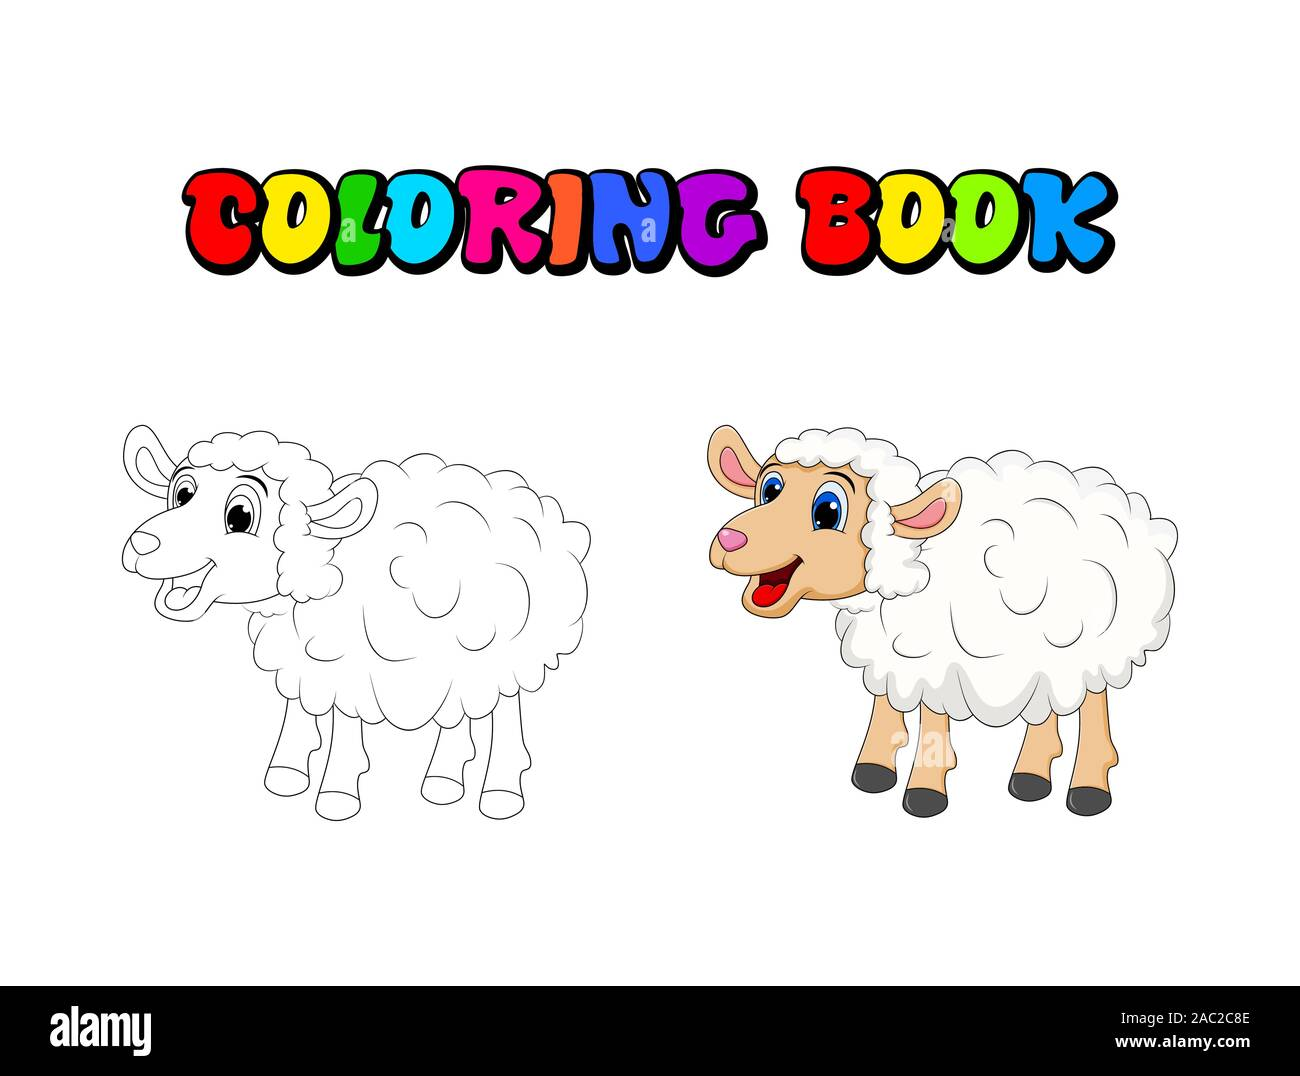 Cartoon Cute White Sheep Coloring Book Pages Sheep Standing For Farm Concept Vector Illustration Isolated On White Background Stock Vector Image Art Alamy